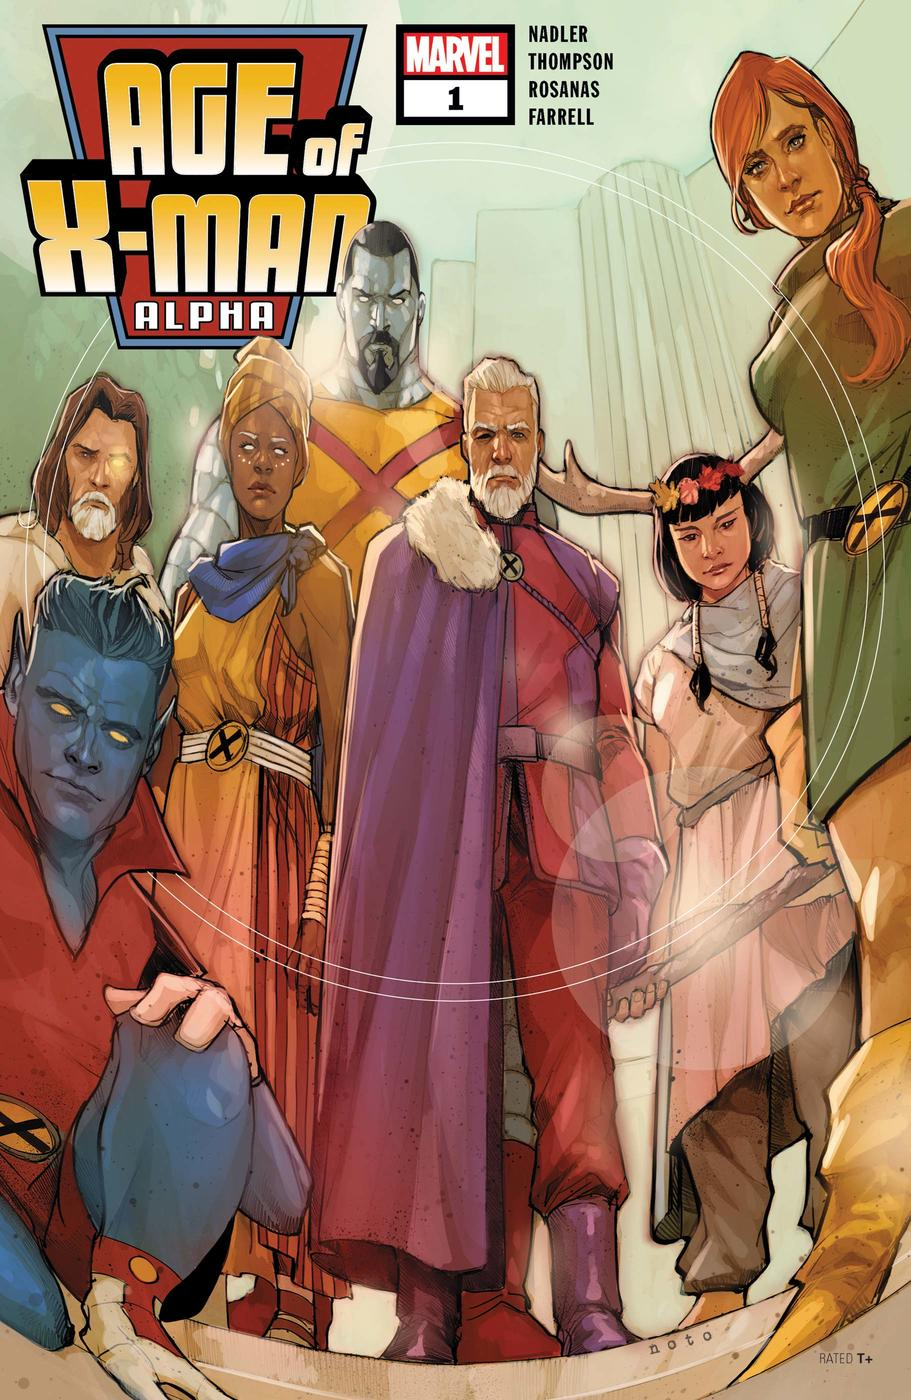 AGE OF X-MAN: ALPHA #1